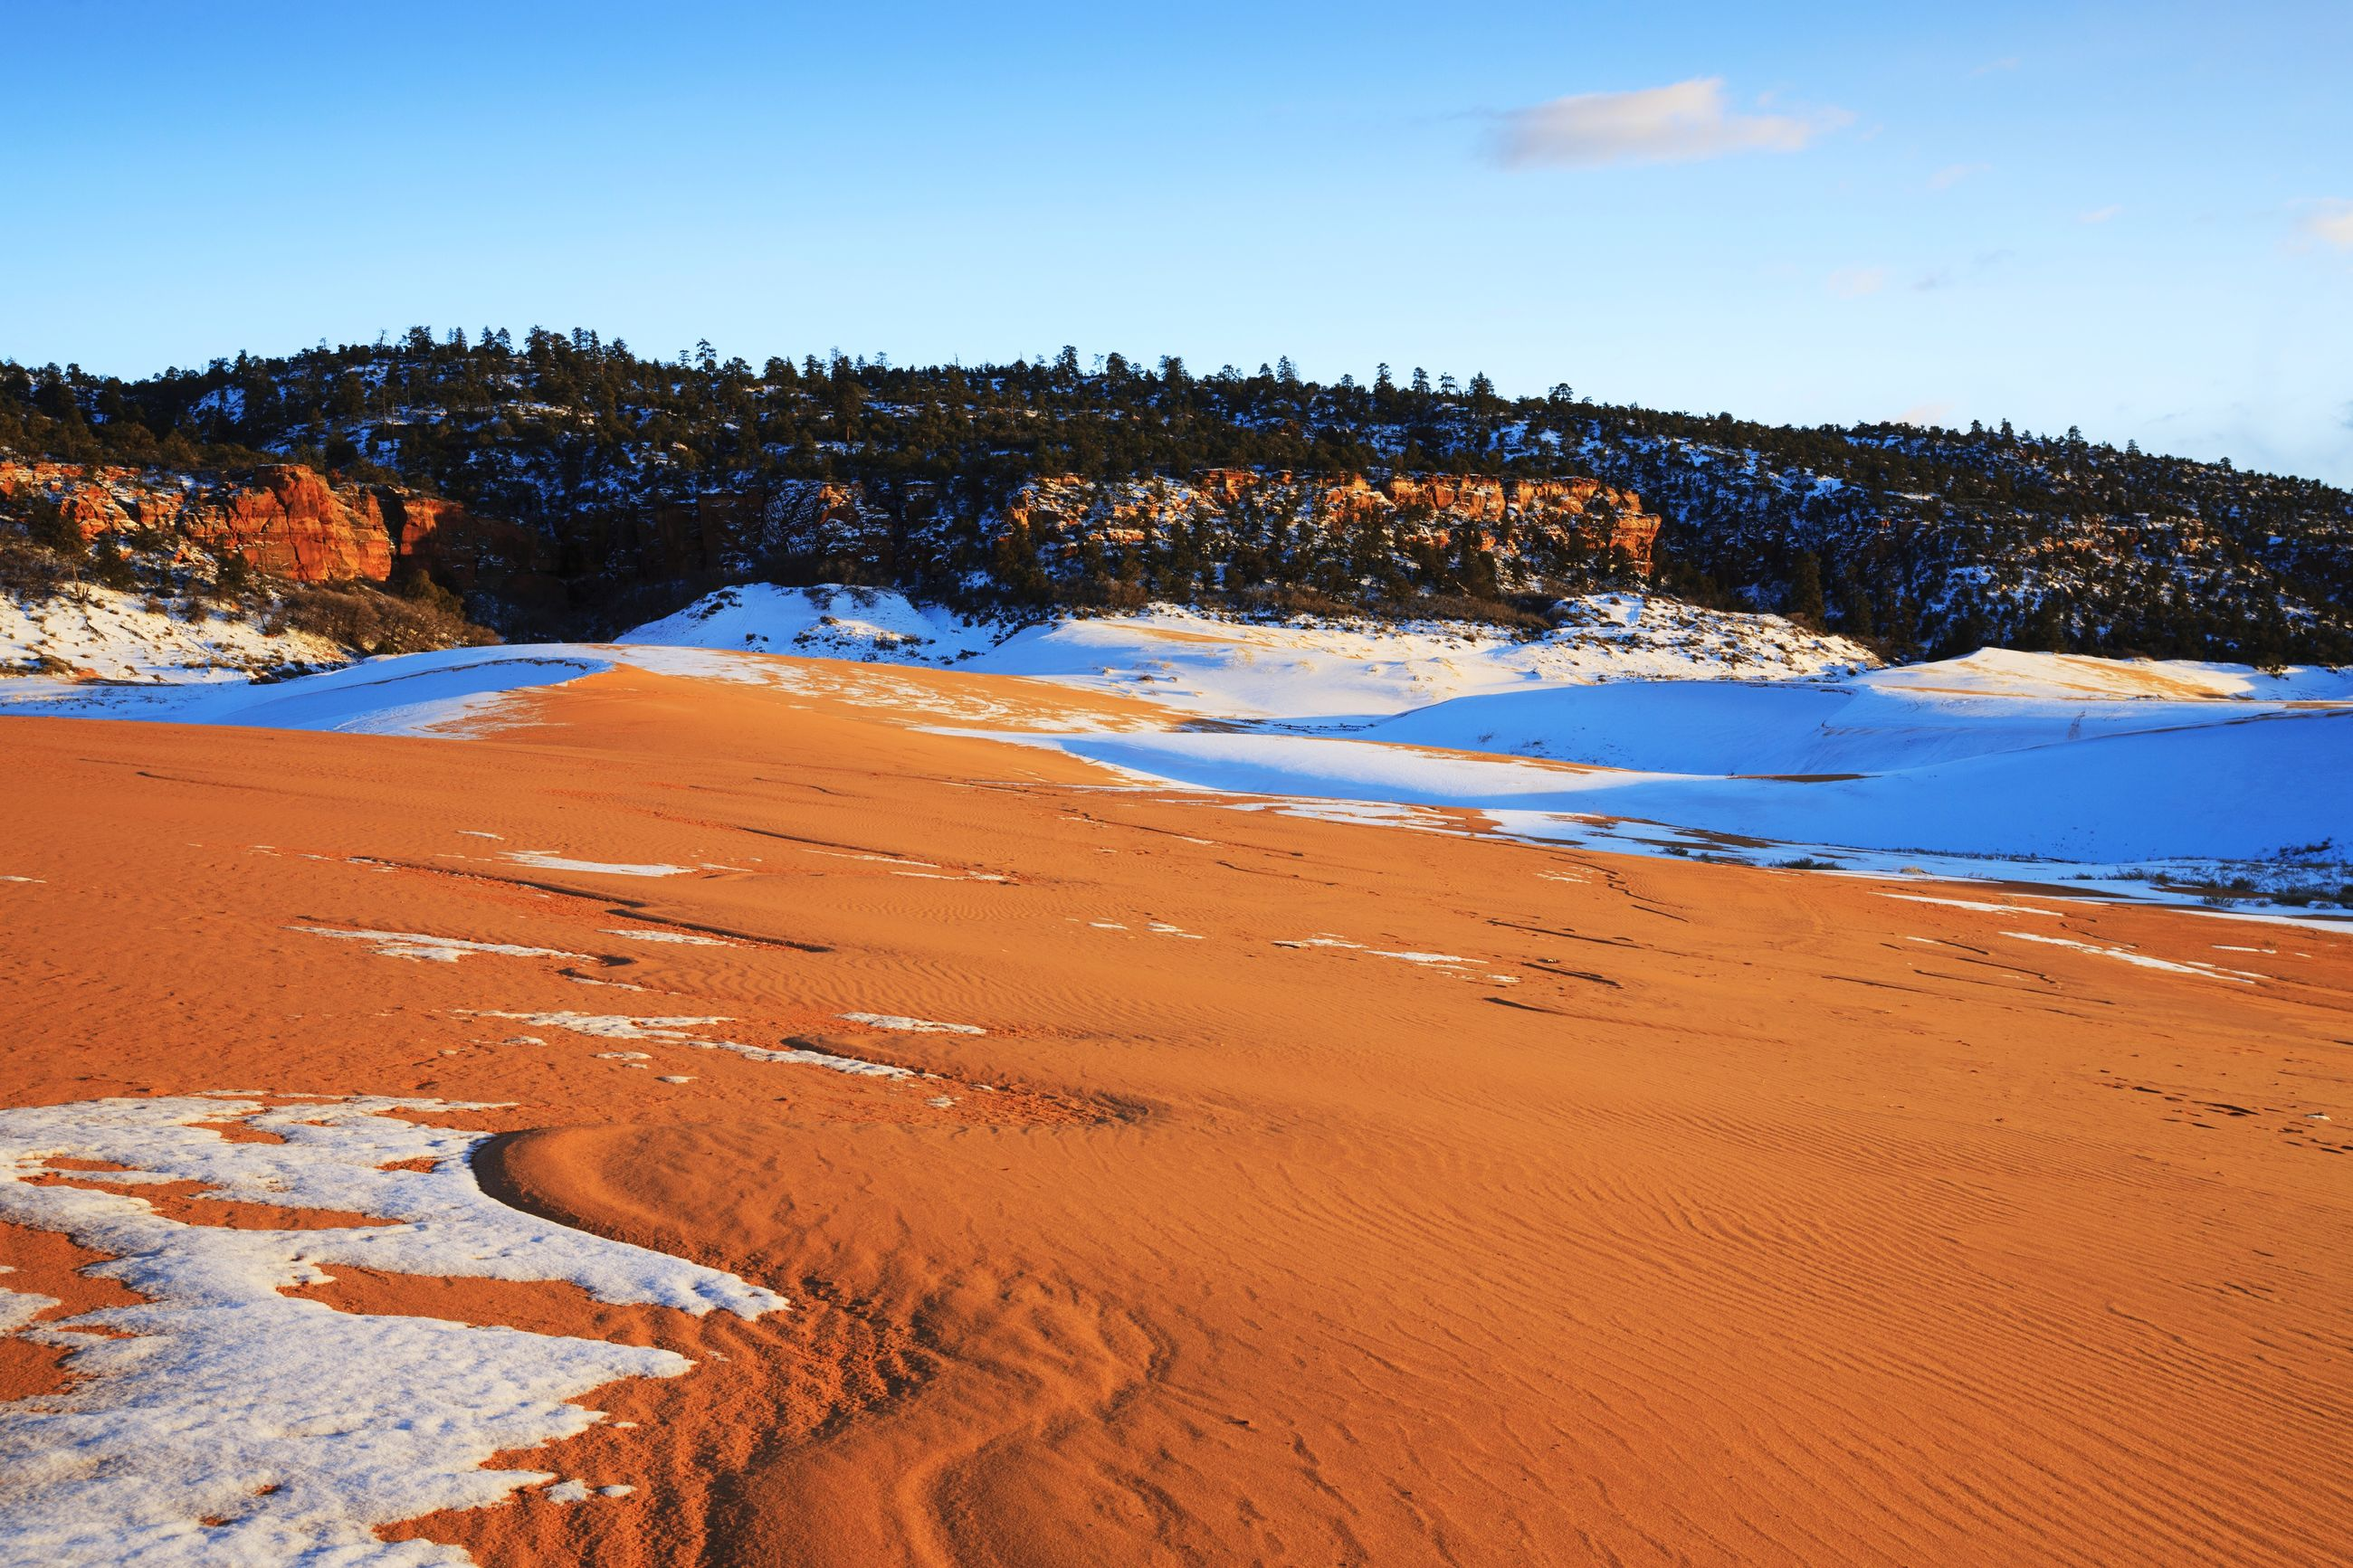 Scenic view of desert during winter